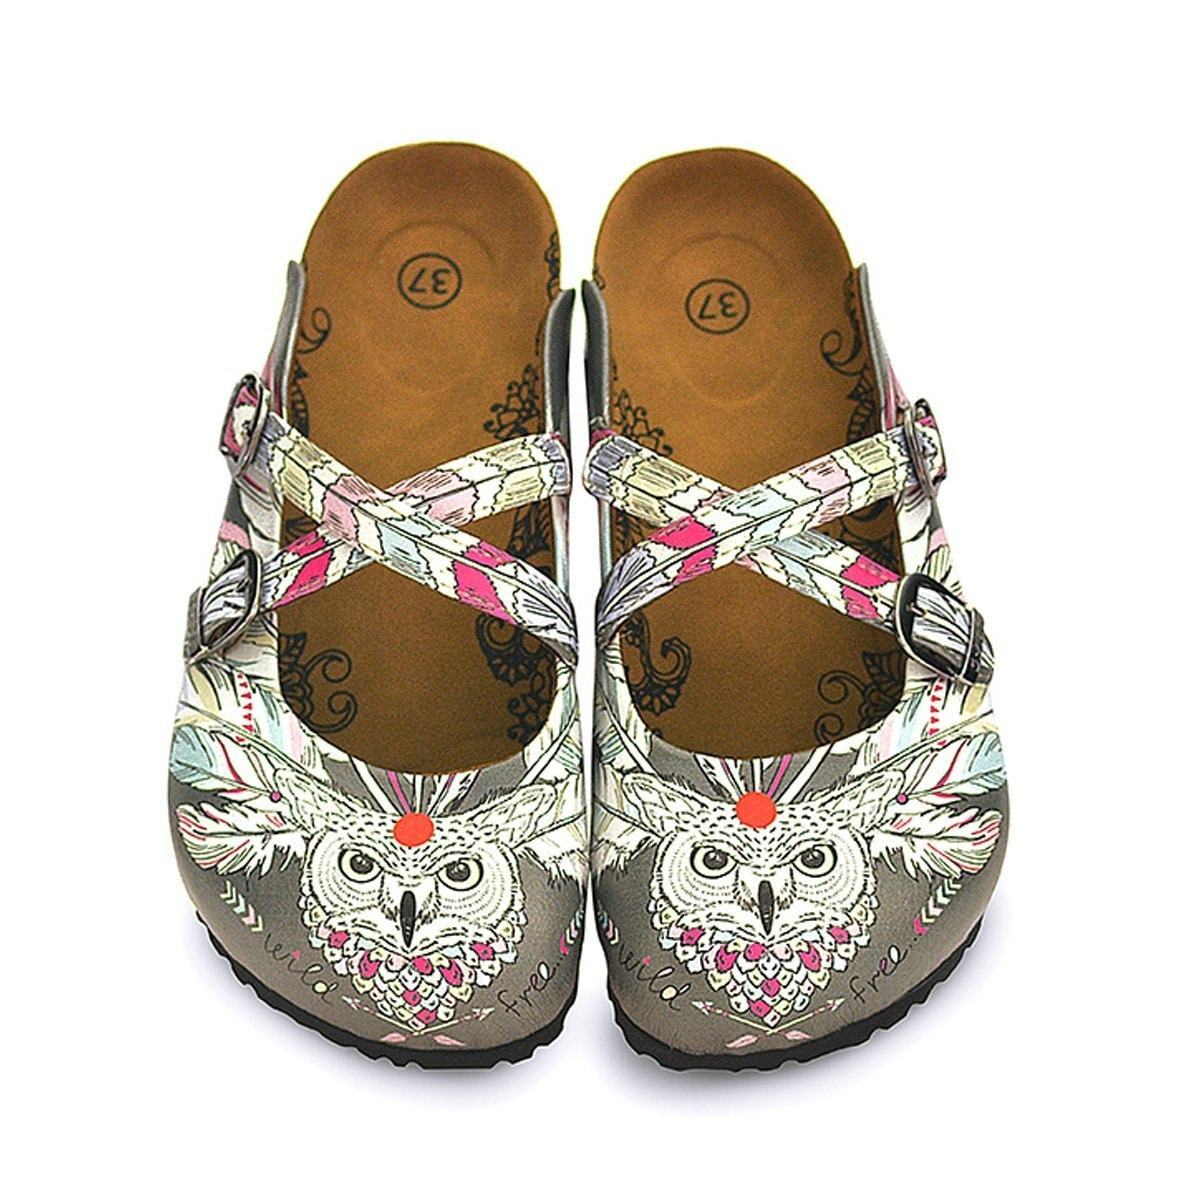 Gray Wild Free Owl Cross-Strap Clogs WCAL133 - Goby CALCEO Clogs